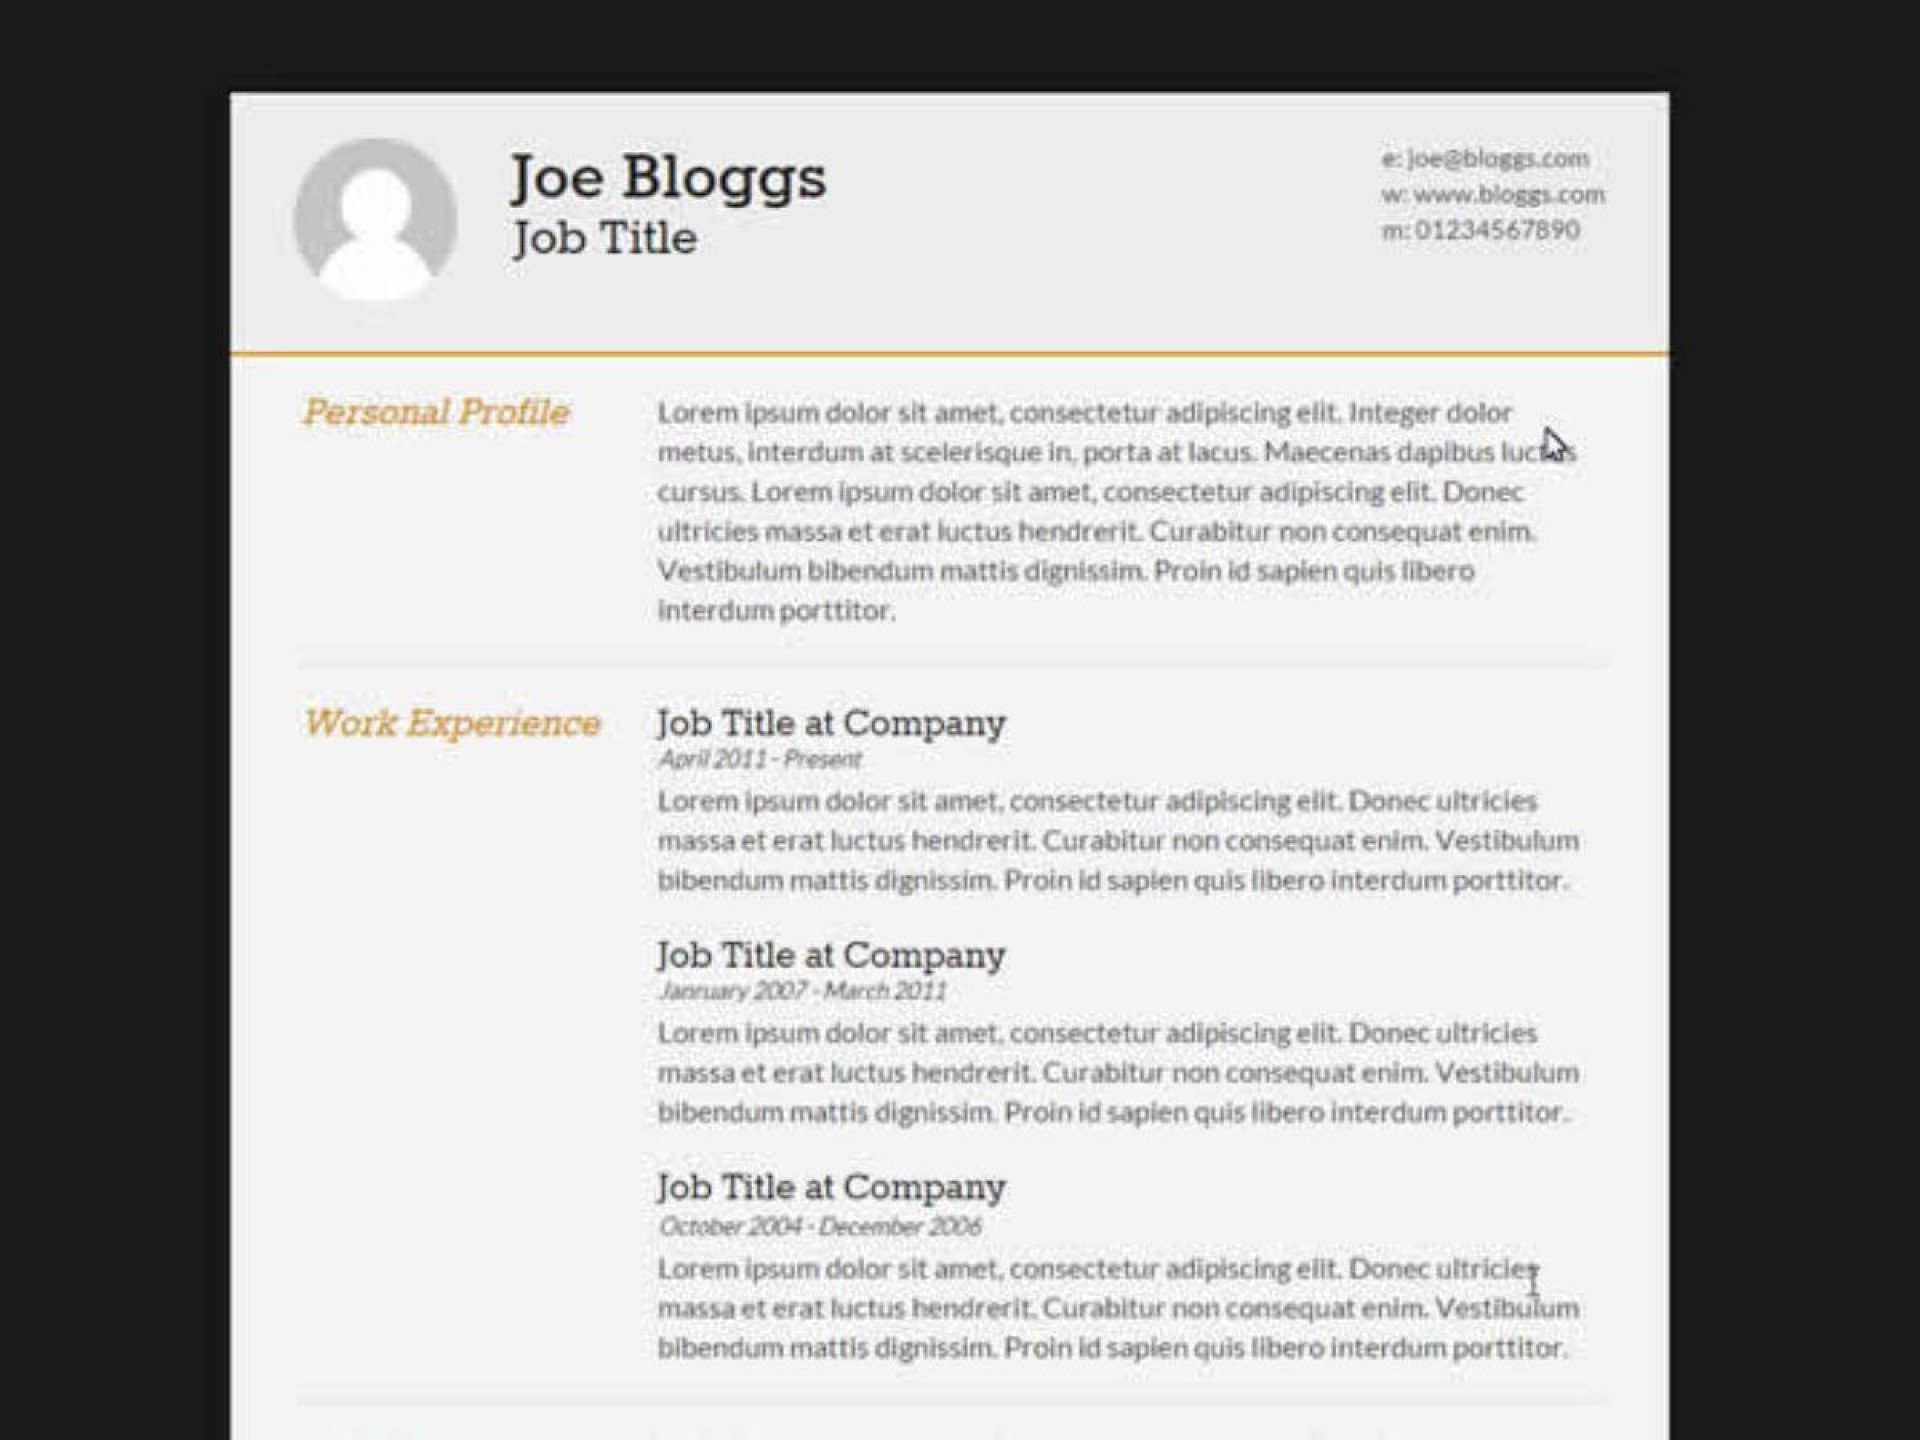 009 Surprising Free Html Resume Template High Resolution  Html5 Best Cv Desmond / Download1920